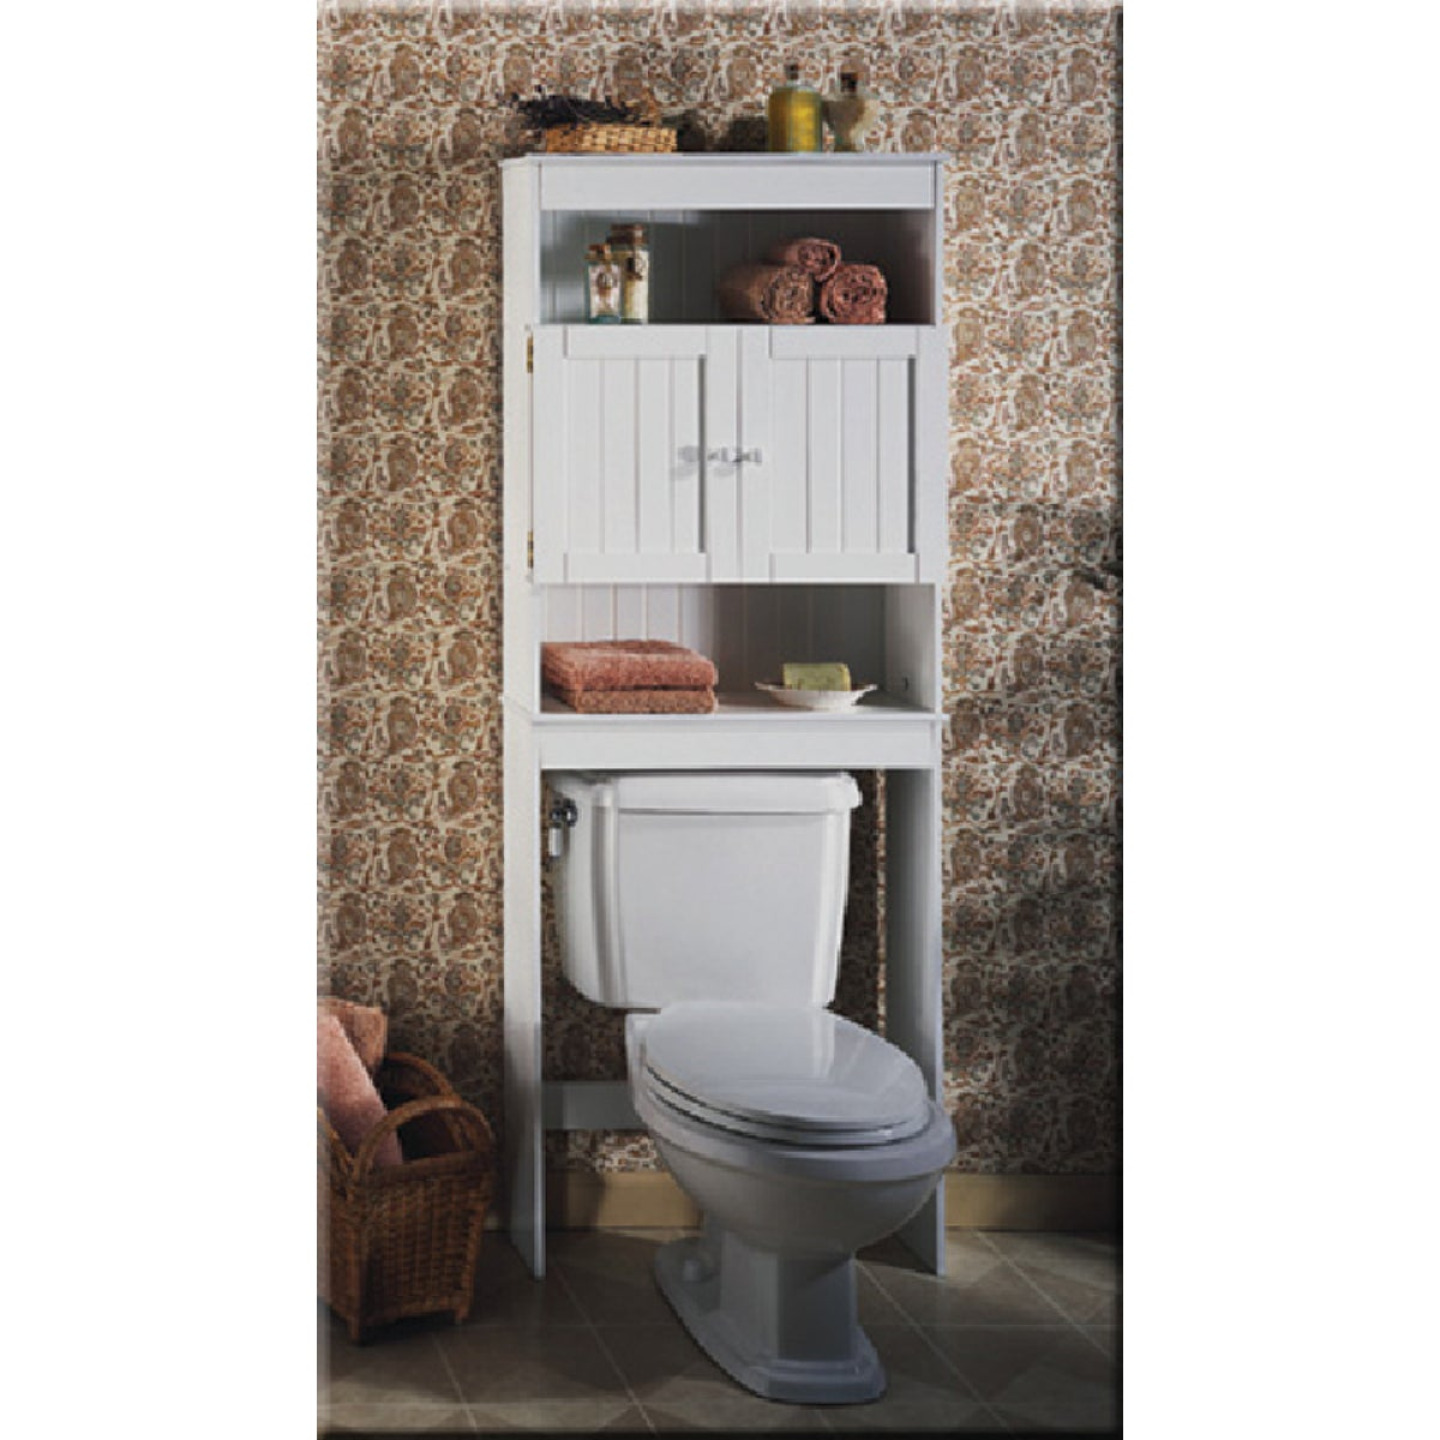 Zenith Country Cottage White Over-the-Toilet Cabinet, 2 Door/3 Shelf Image 1